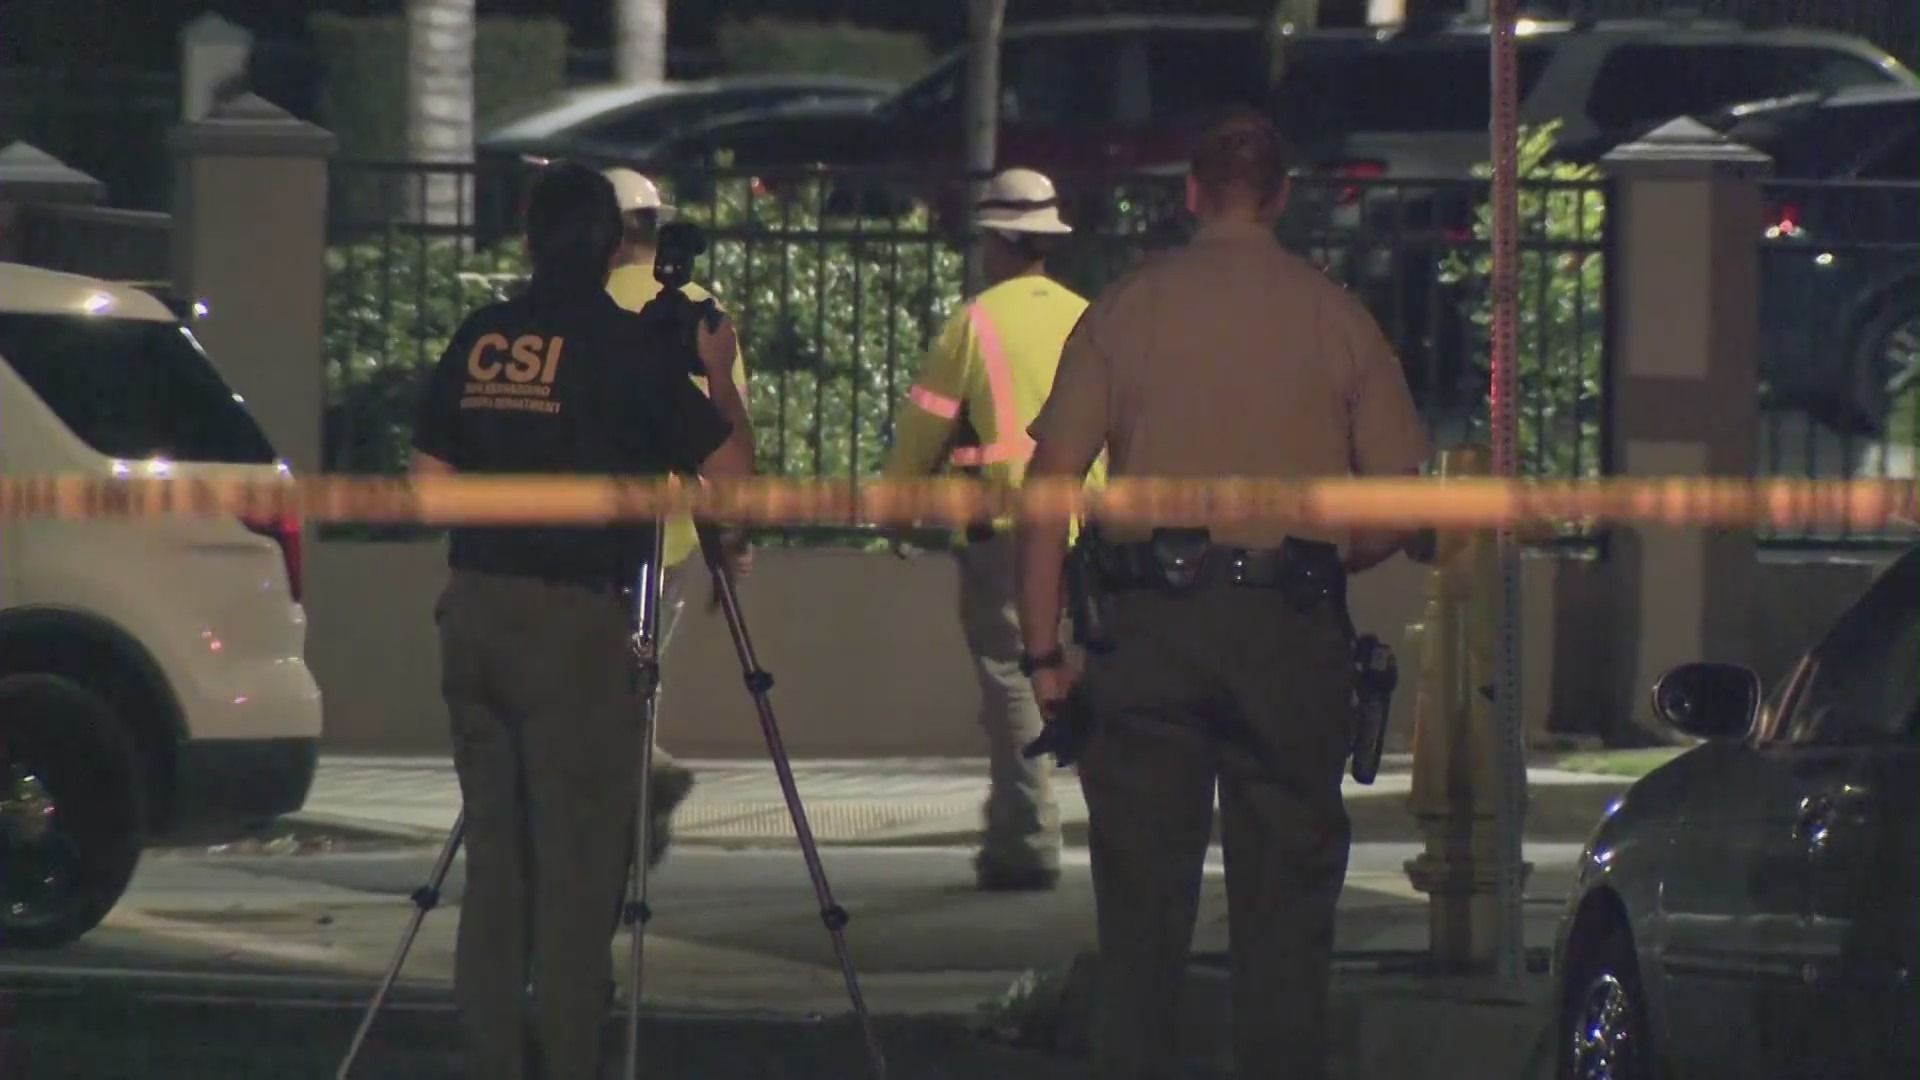 Authorities respond to the scene of an officer-involved-shooting in Colton on July 29, 2021. (KTLA)